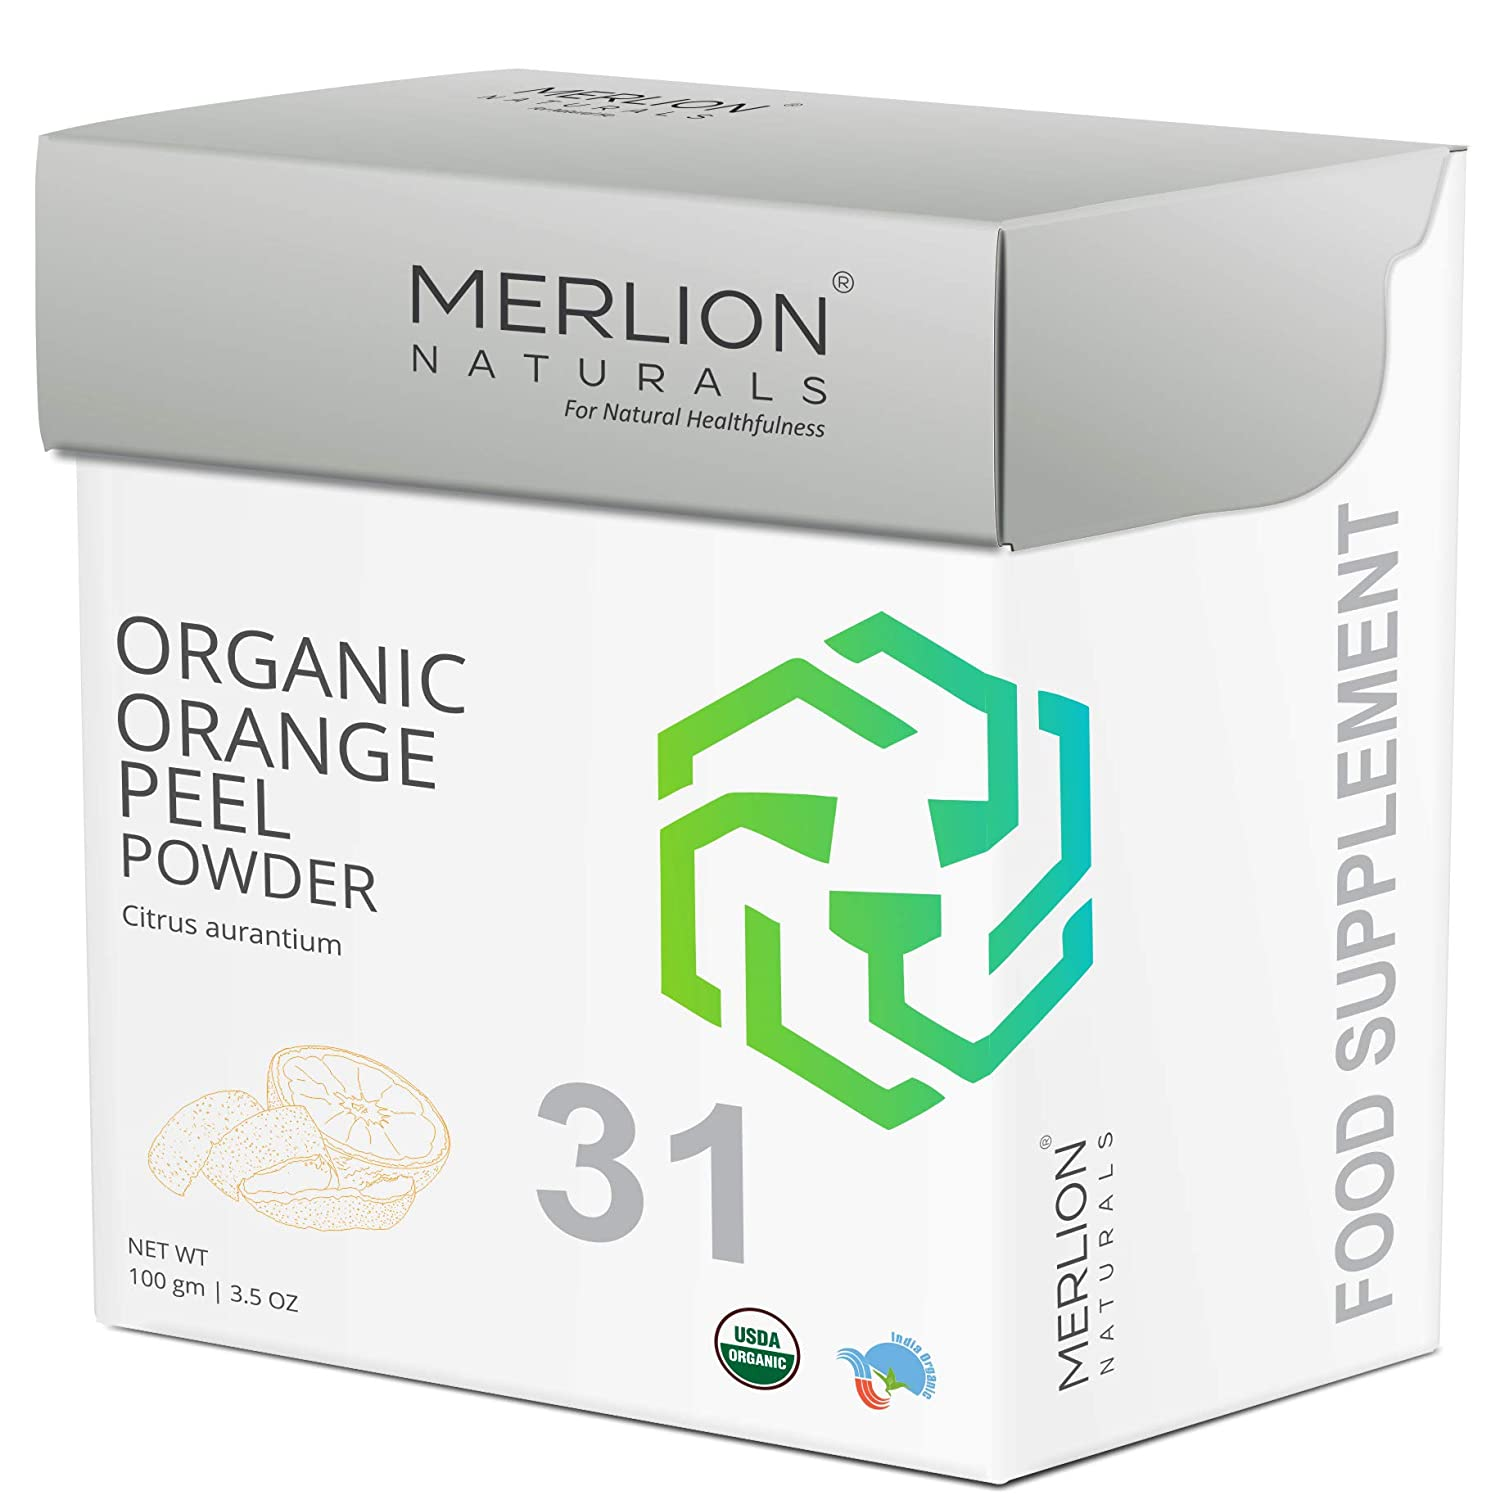 Organic Orange Peel Powder by Merlion Naturals | Citrus aurantium | USDS NOP Certified 100% Organic